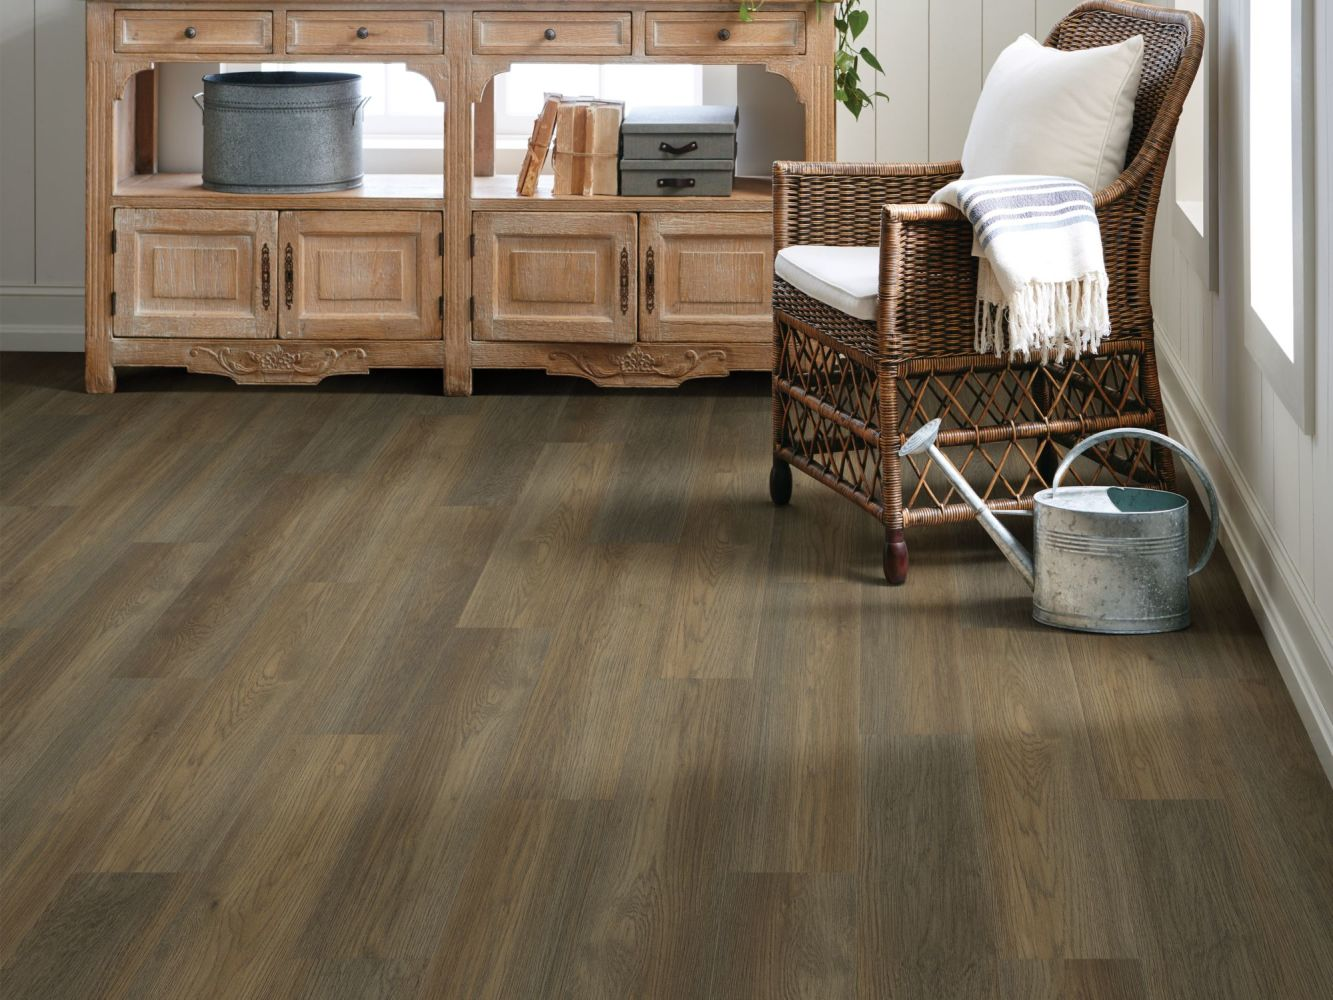 Shaw Floors Resilient Residential Ethereal Oaks Raconteur 07195_3054V